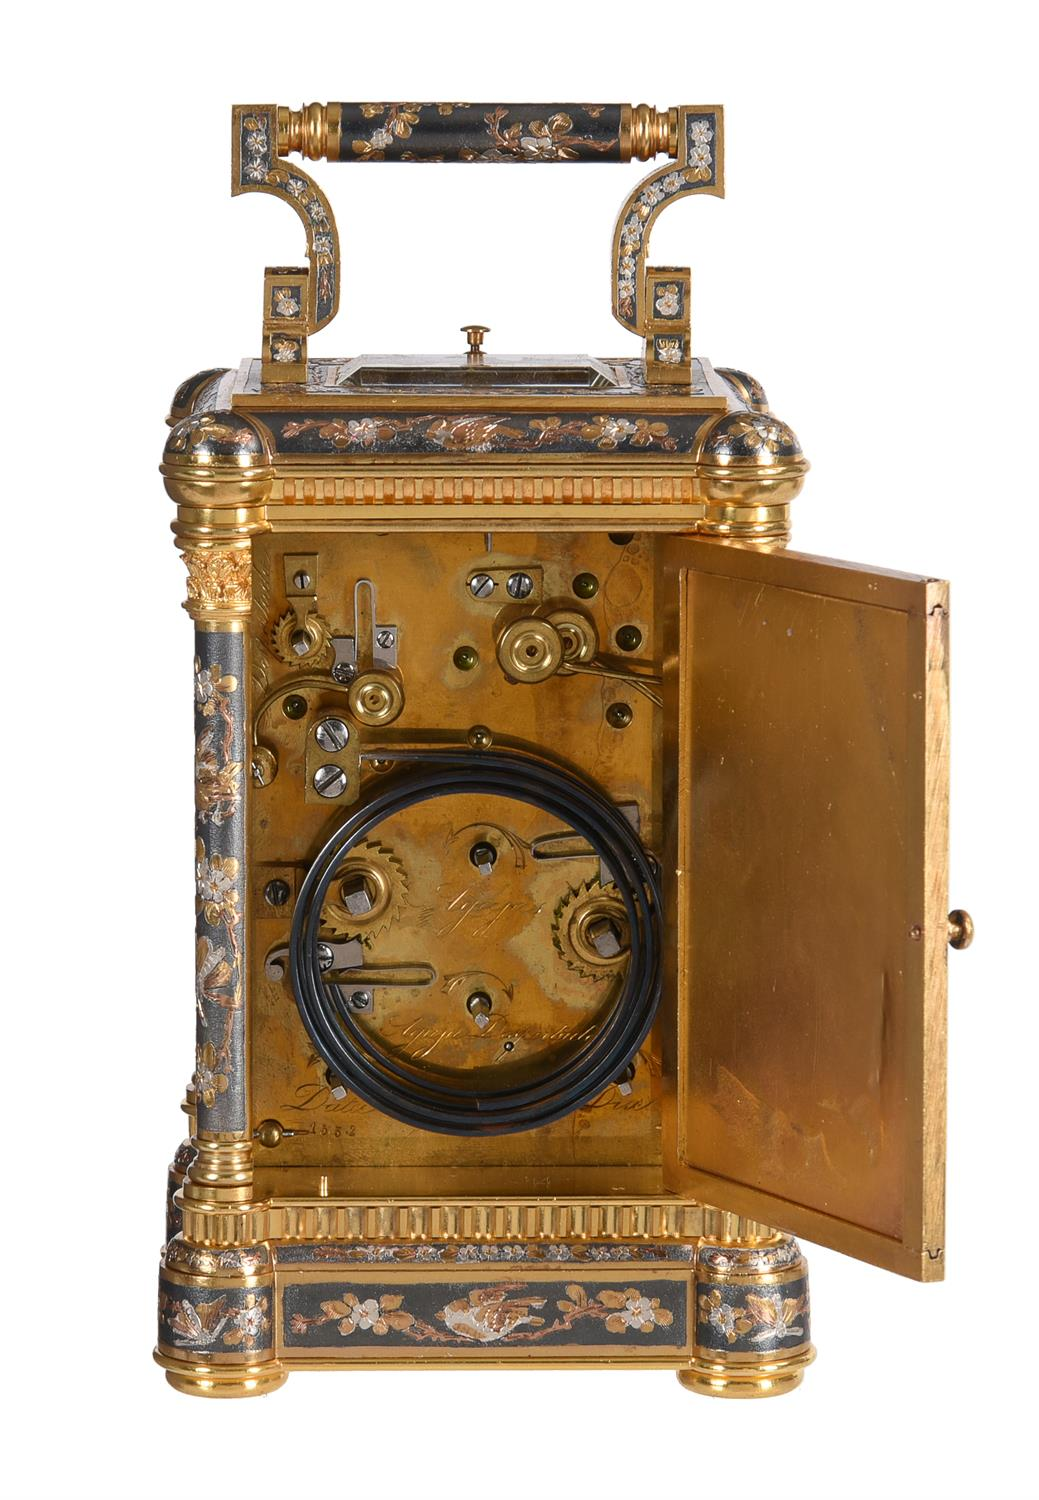 A fine multi-colour grande-sonnerie striking and repeating moonphase calendar alarm carriage clock - Image 4 of 8